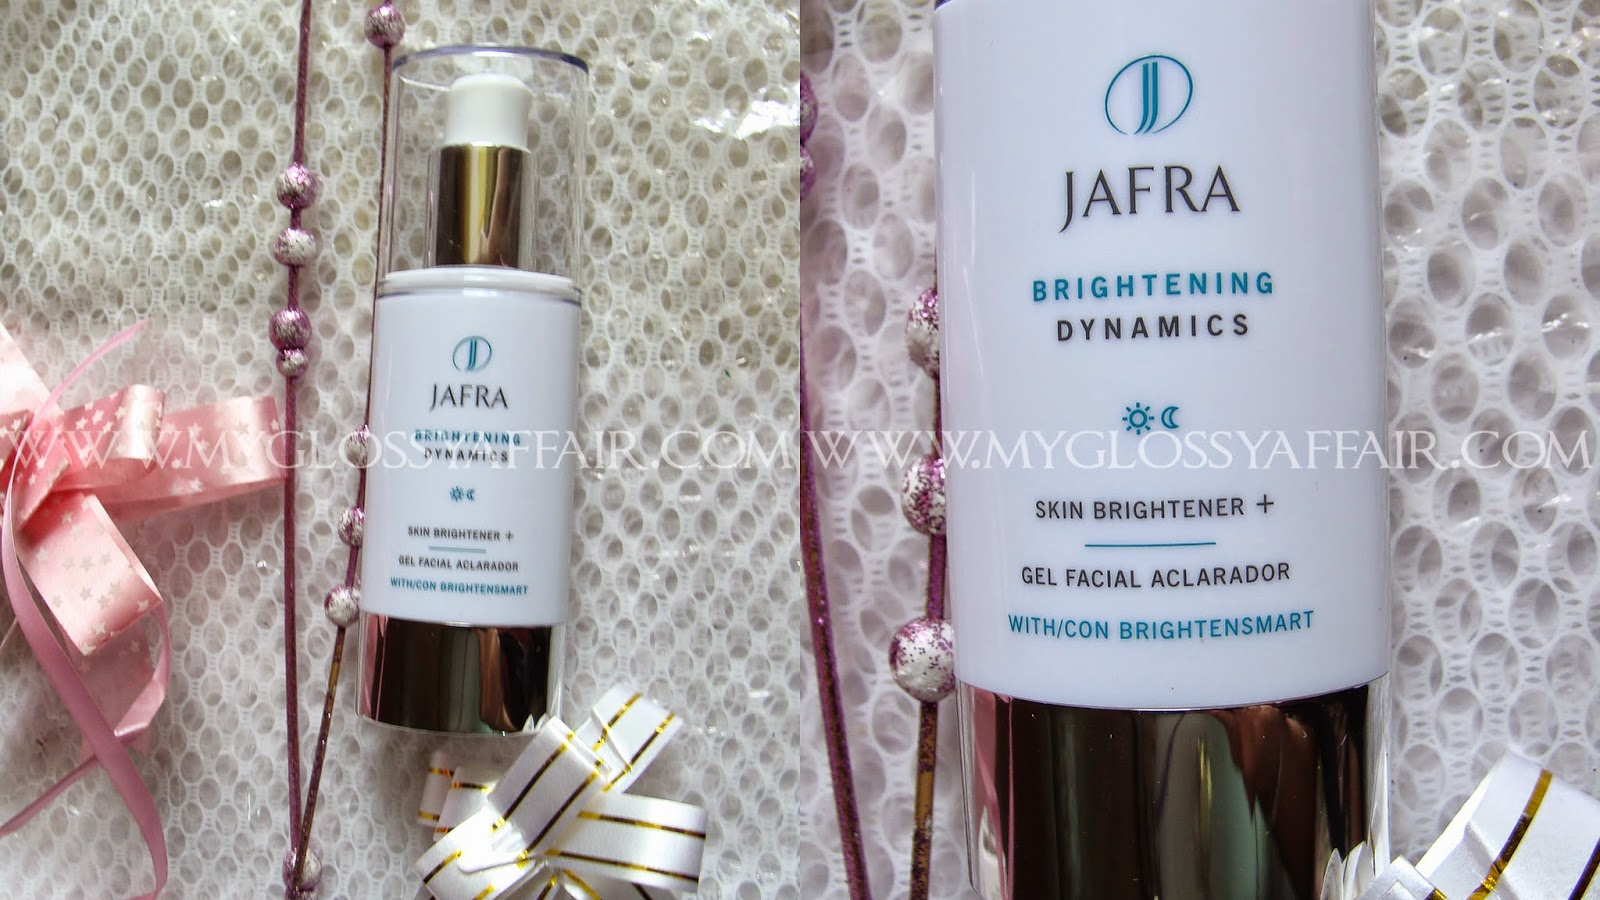 Jafra Skin Brightening Serum